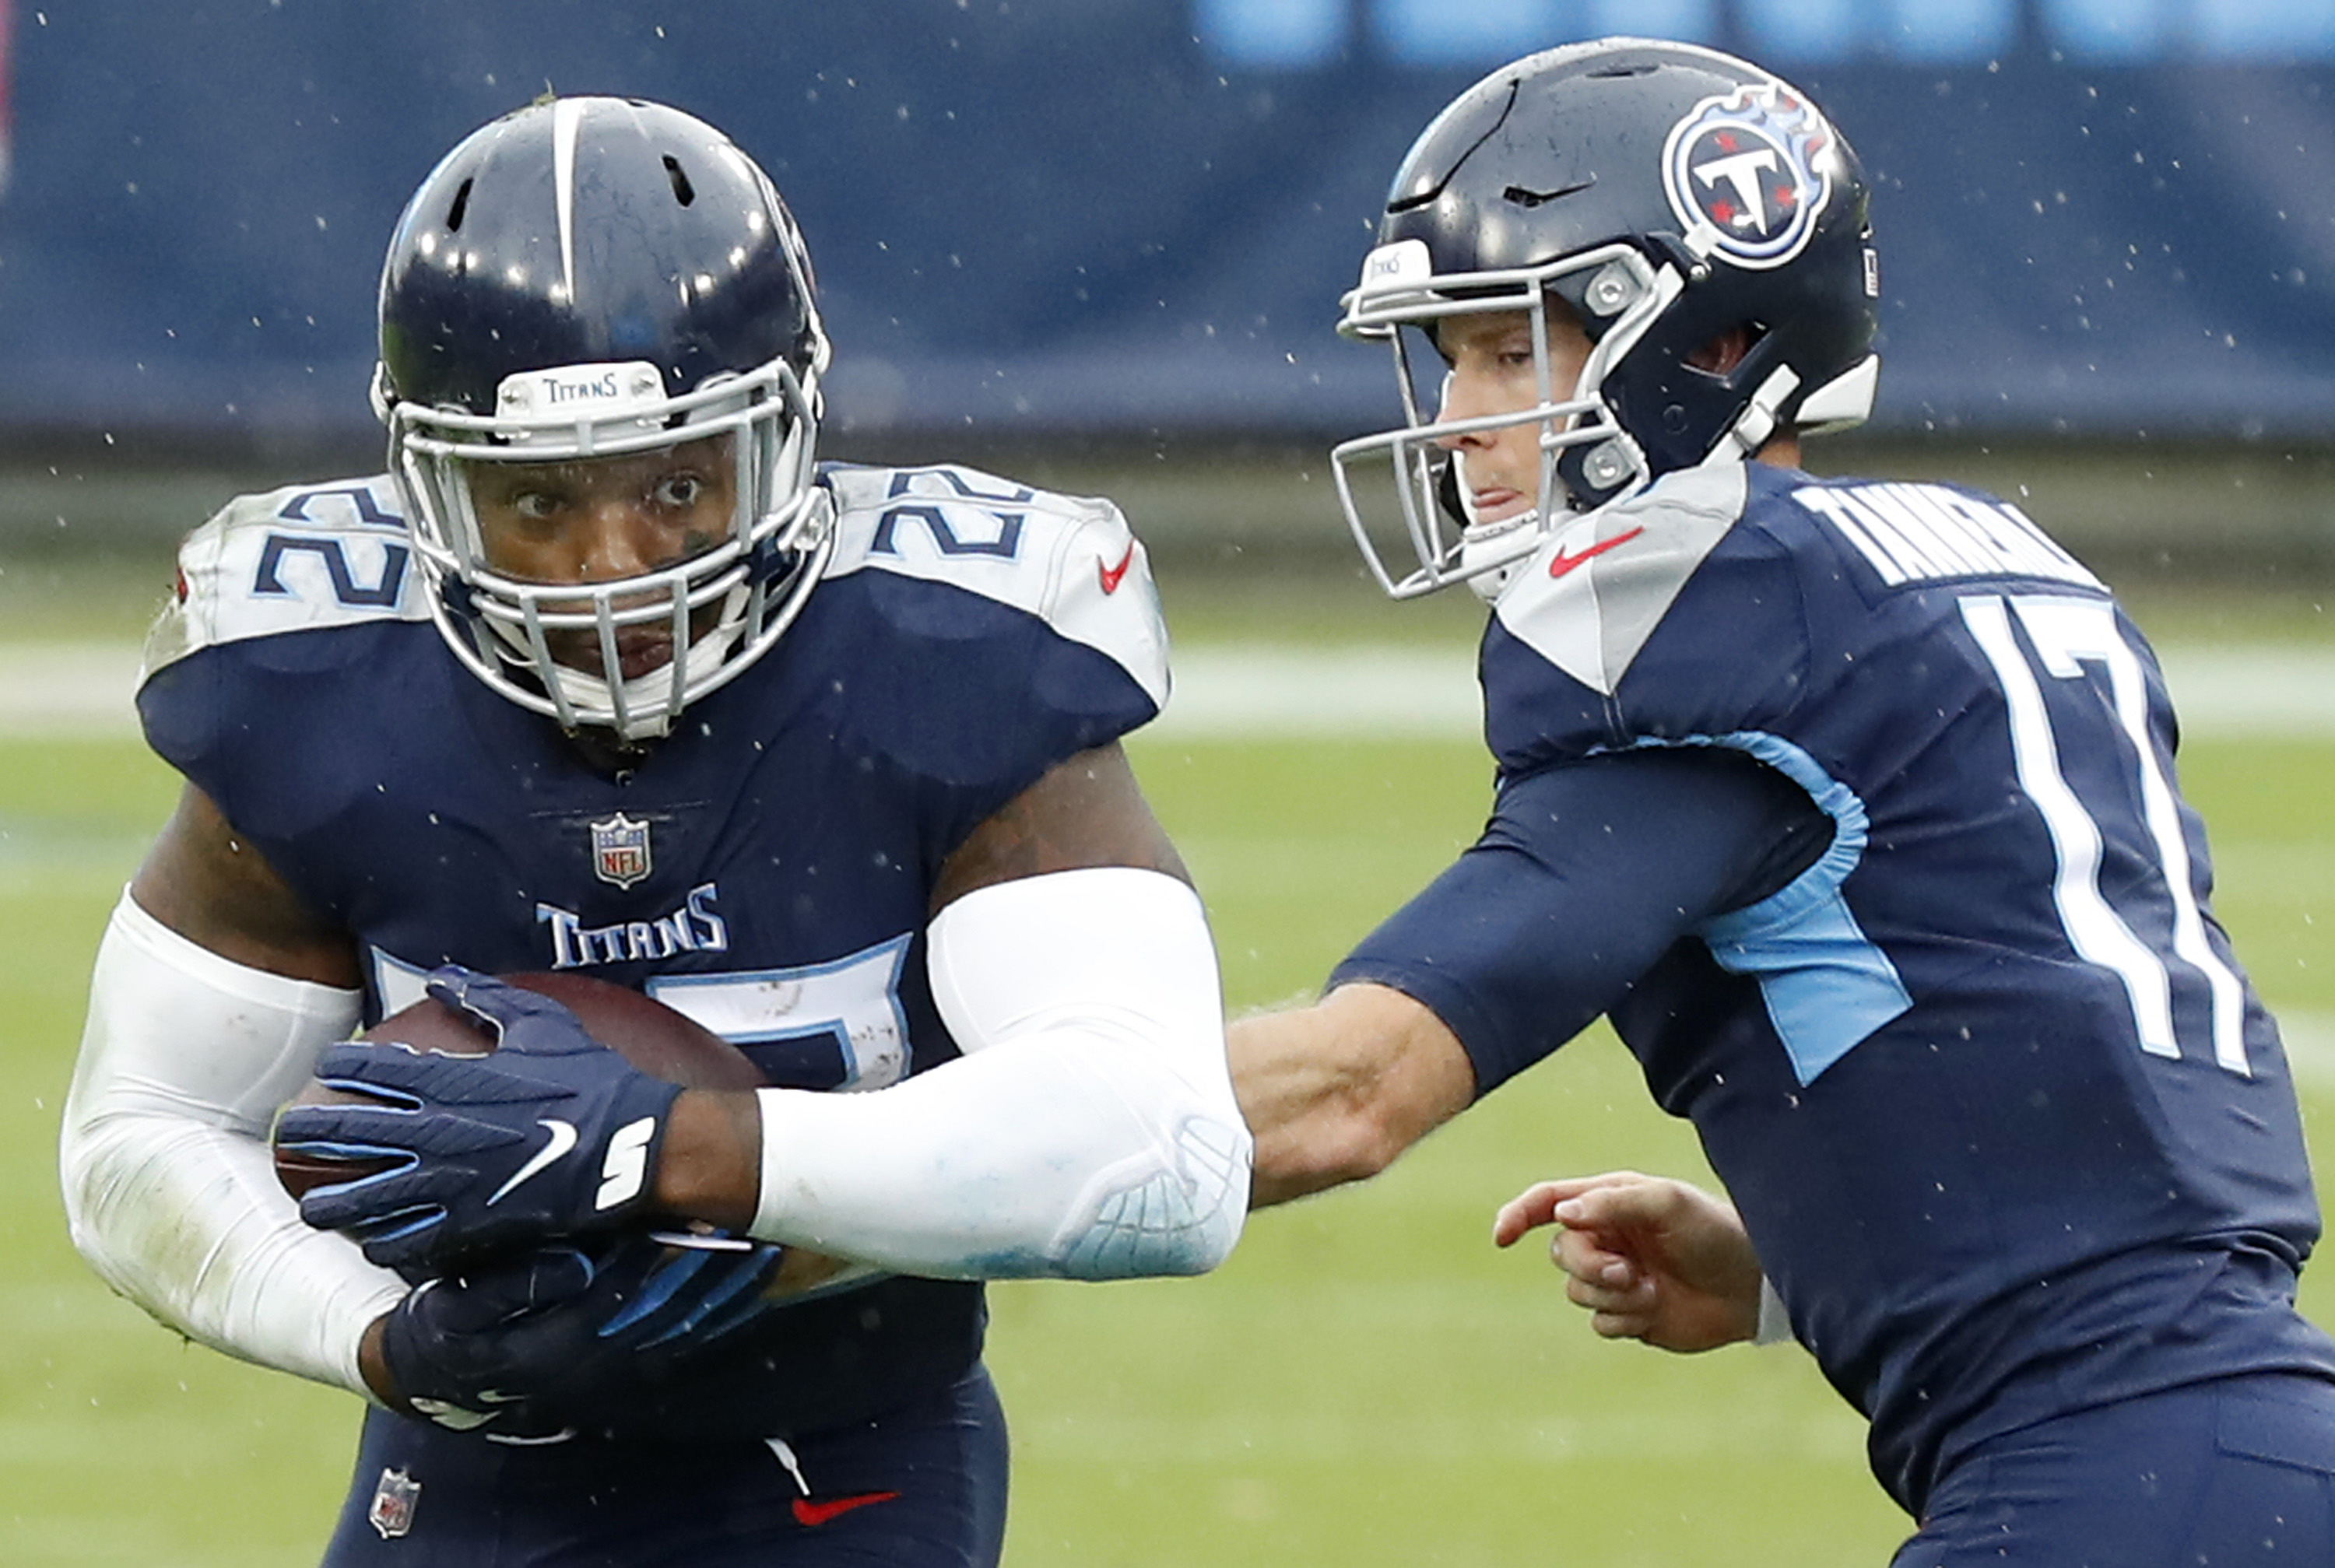 Derrick Henry #22 of the Tennessee Titans takes the hand-off